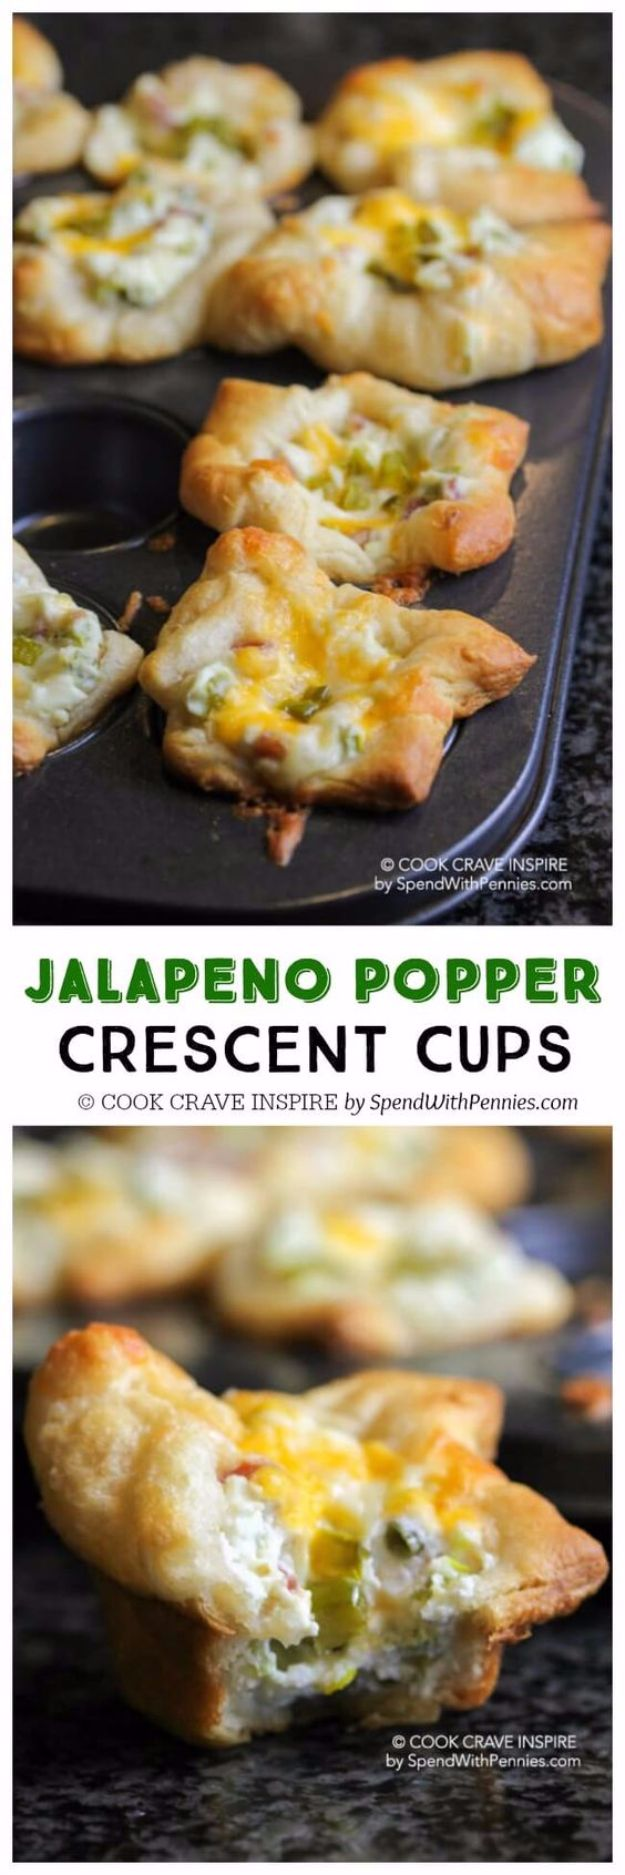 Best Crescent Roll Recipes - Jalapeno Popper Crescent Cups - Easy Homemade Dinner Recipe Ideas With Cresent Rolls, Breakfast, Snack, Appetizers and Dessert - With Chicken and Ground Beef, Hot Dogs, Pizza, Garlic Taco, Sweet Desserts #recipes